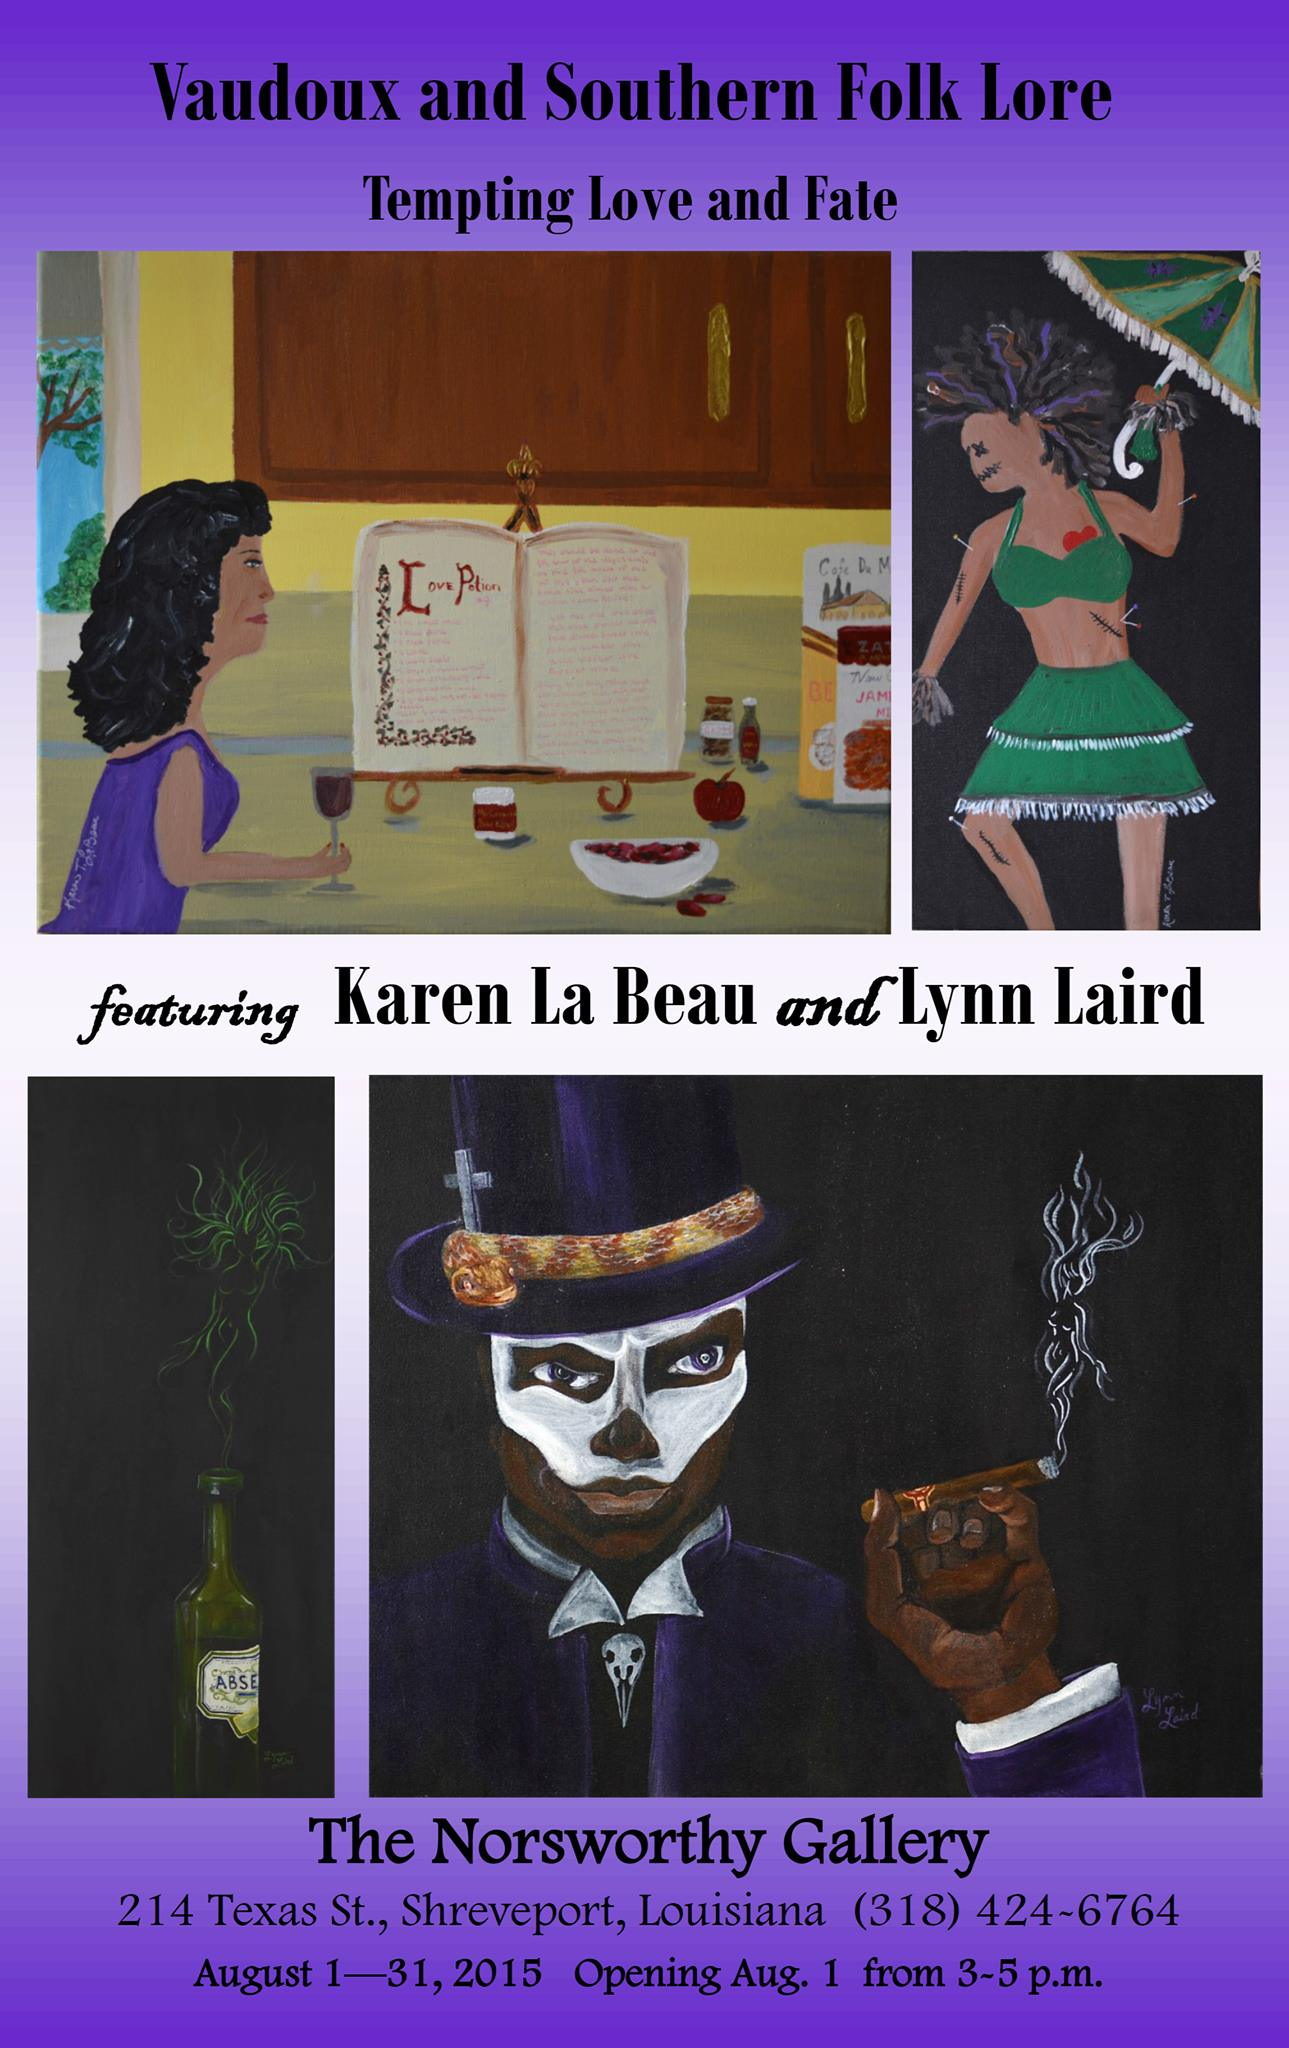 Vaudoux and Southern Lore: Tempting Love and Fate_Karen La Beau and Lynn Laird_Norsworthy Gallery_Shreveport LA